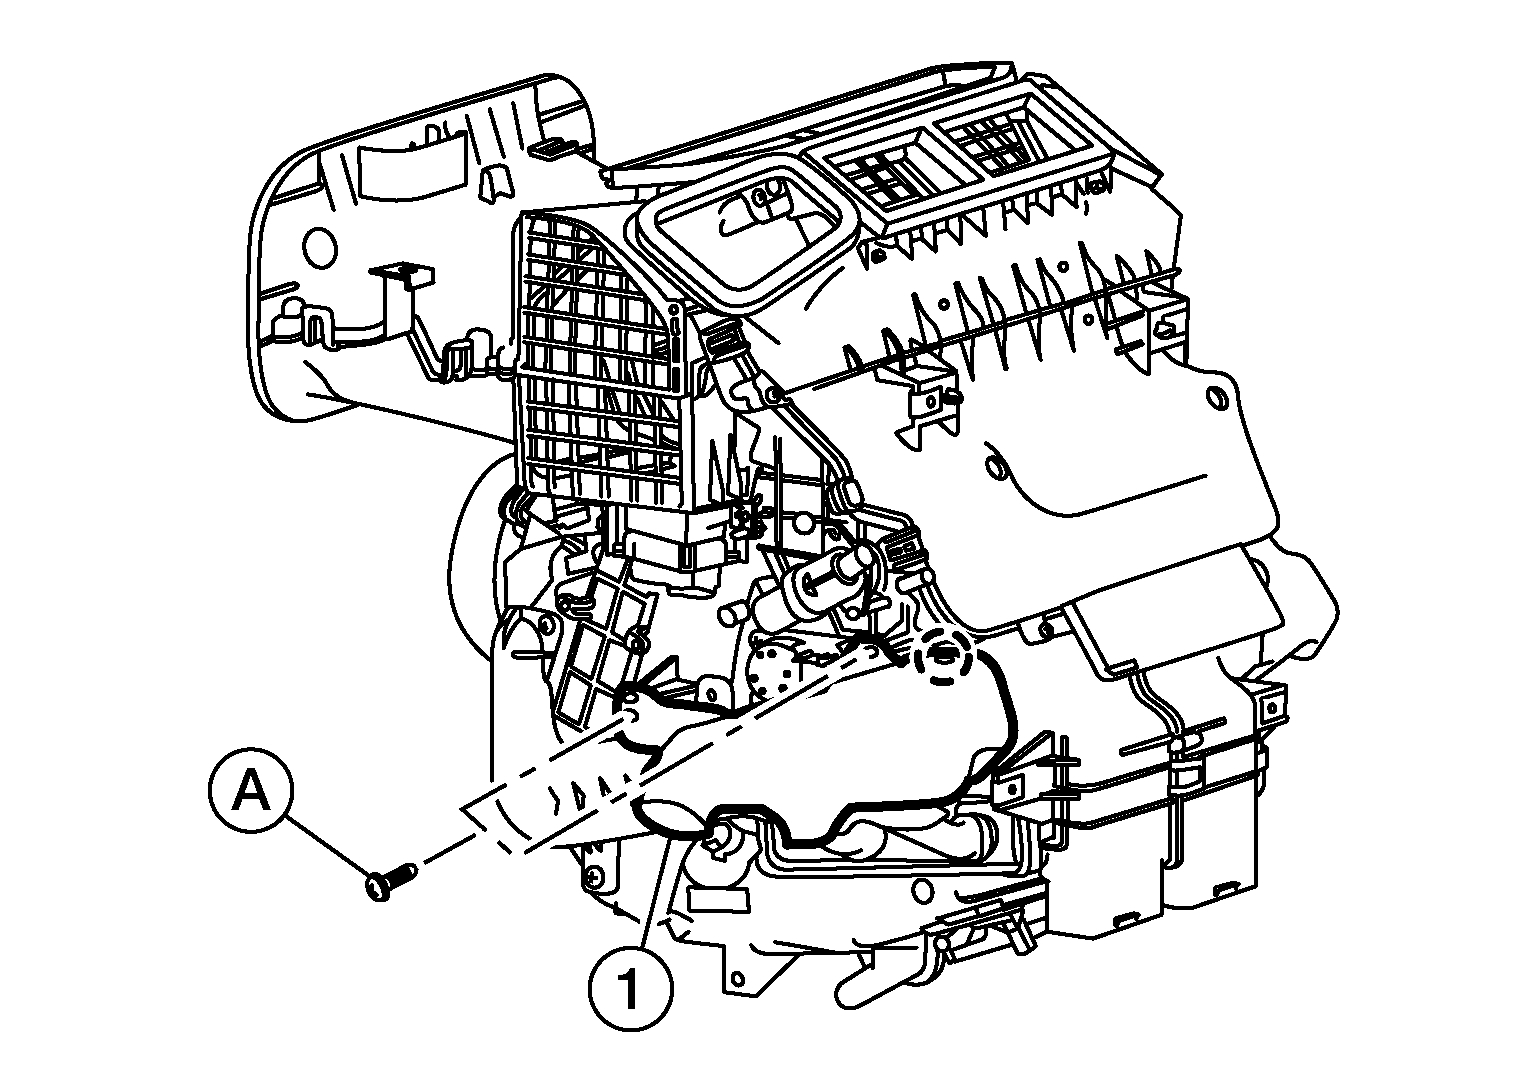 Air Conditioning: I Was Driving and the Engine Stalled as